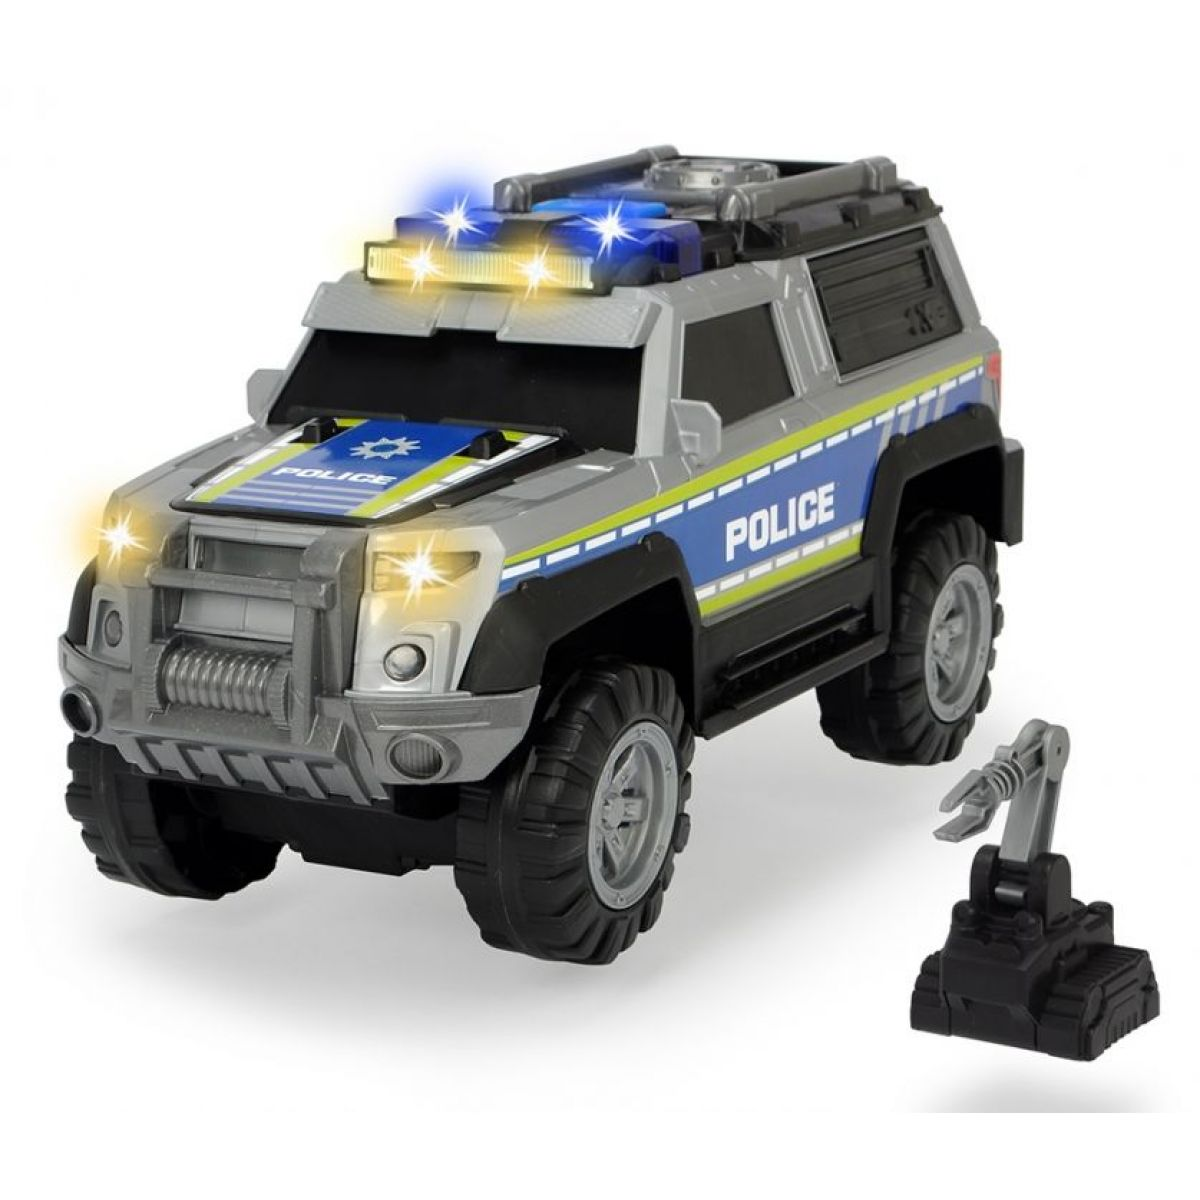 Dickie Action Series Policie Auto 30cm